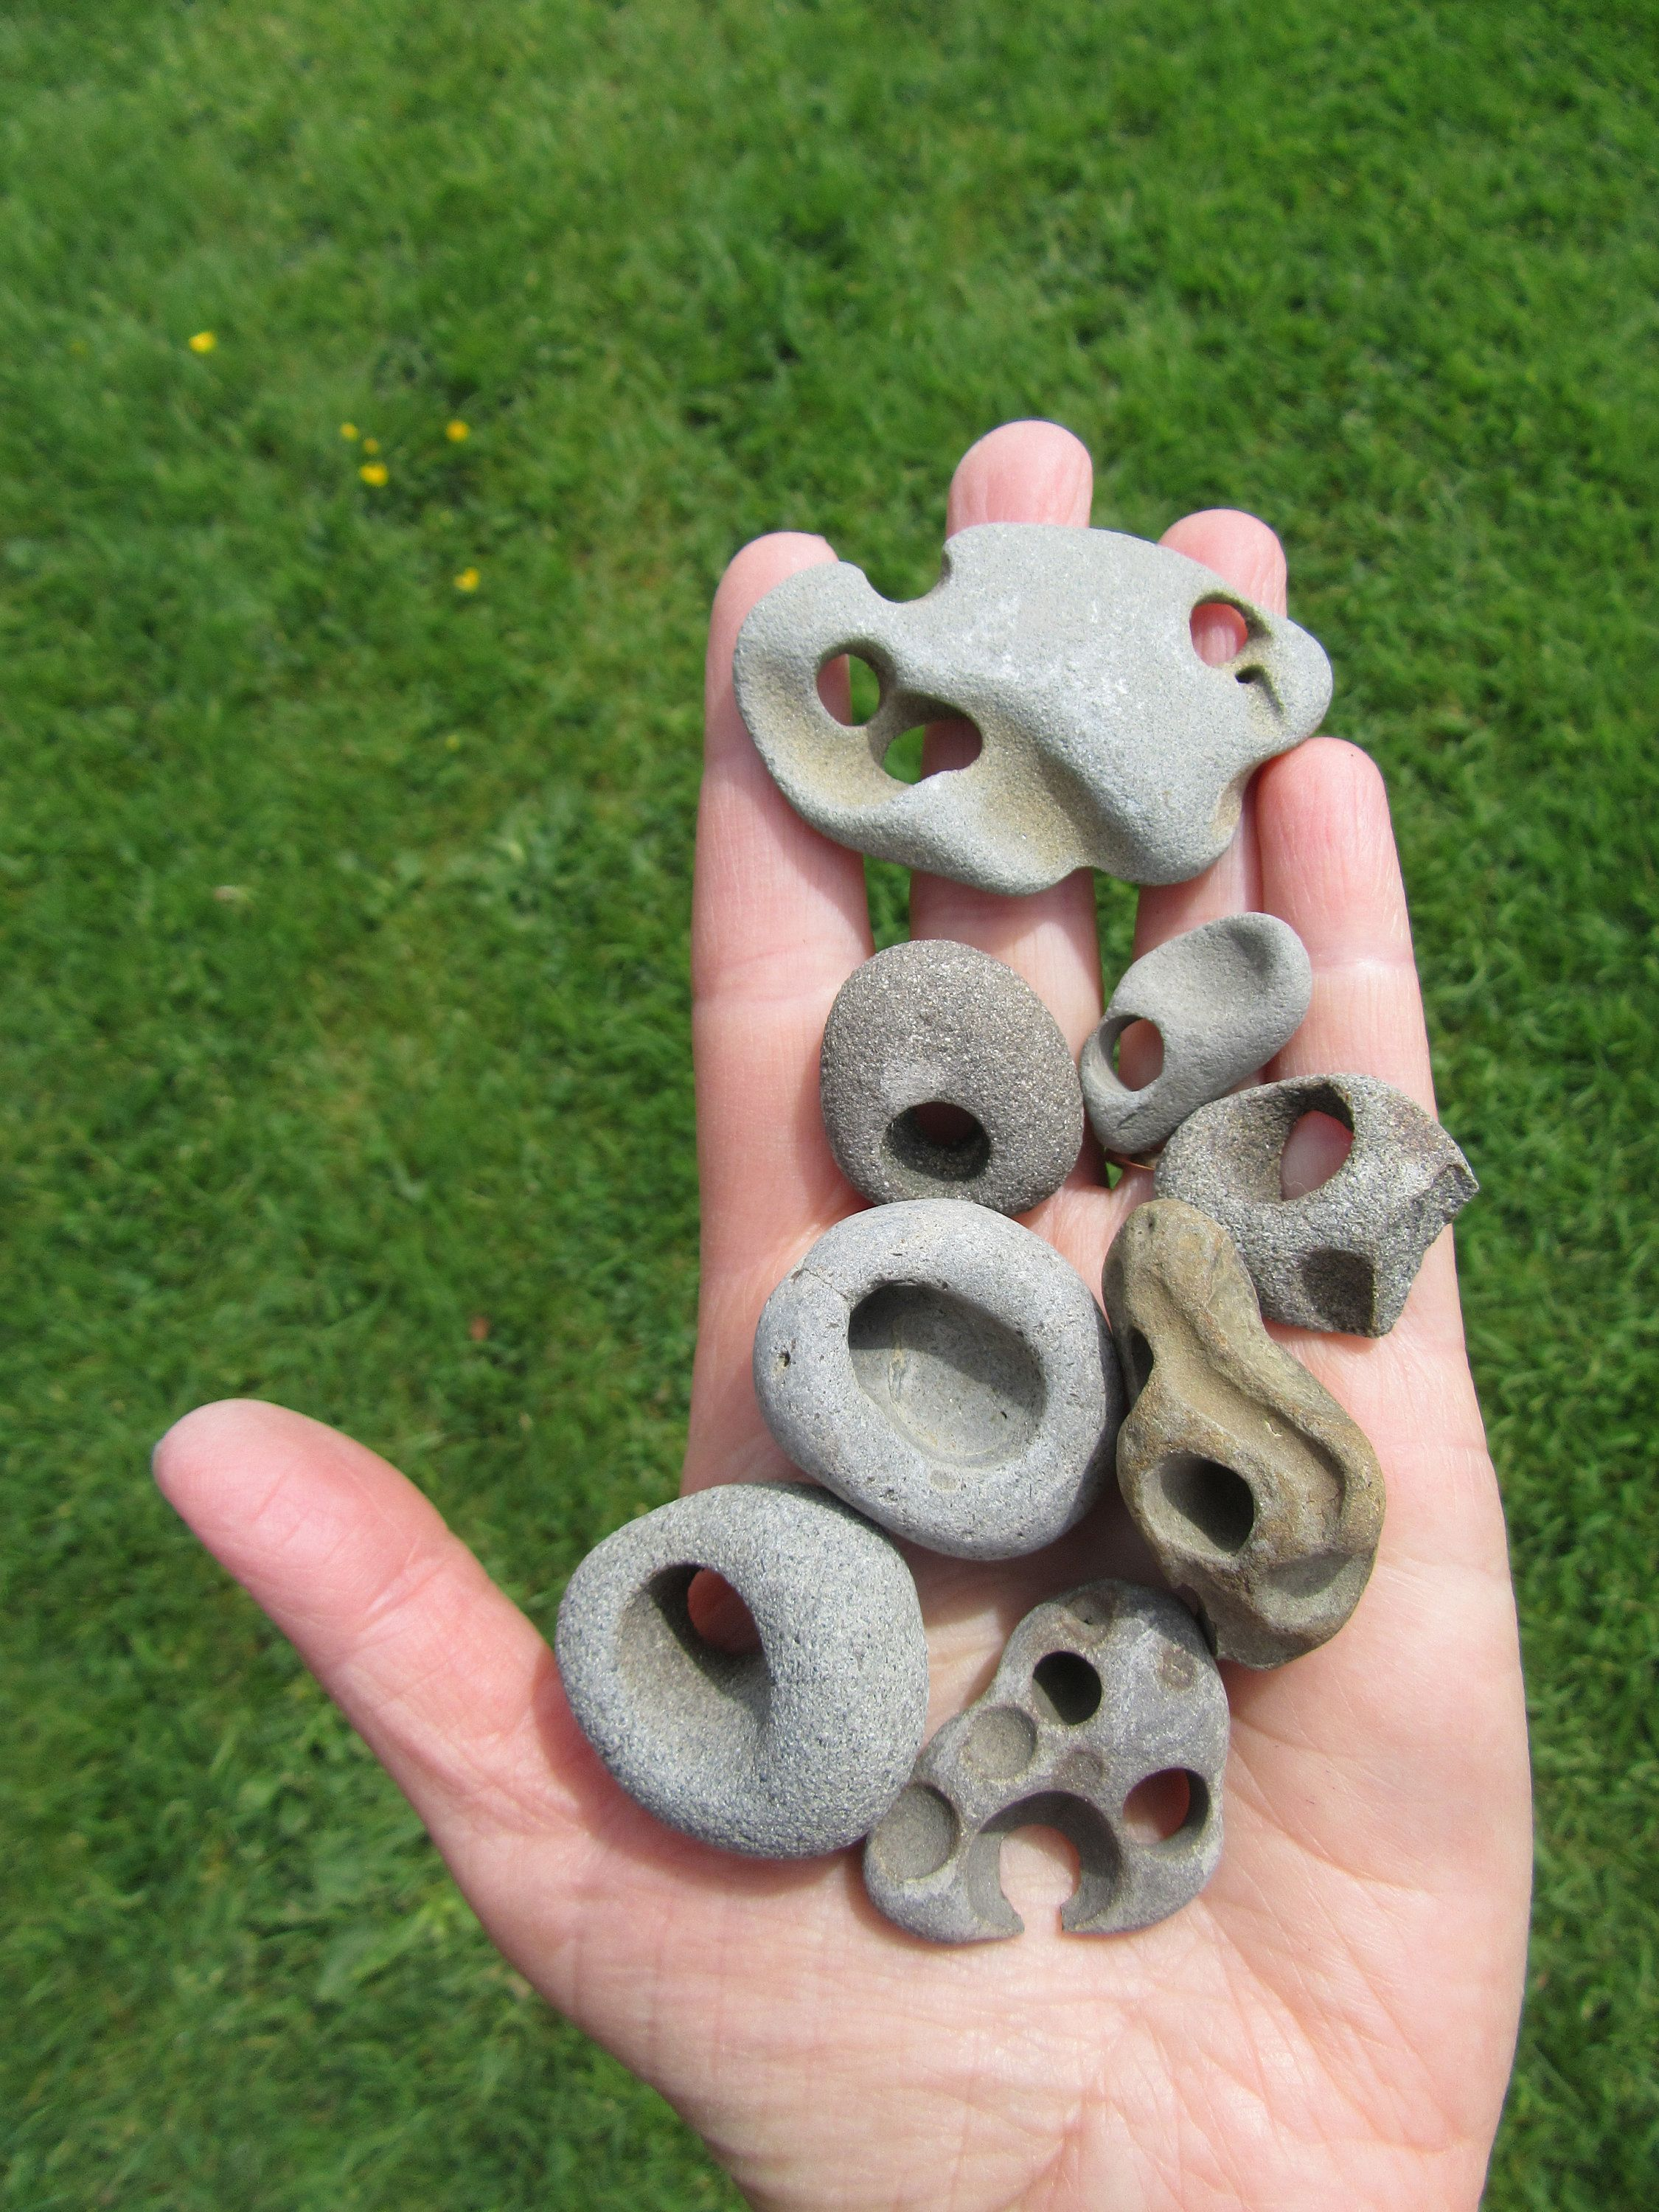 Holey Rocks For Necklace Pendants 10 Rocks 2 Inches And Under Hag Stone Necklace Pendants Use For Your Aquarium Rock Crafts Stone Wrapping Hag Stones Free delivery and returns on ebay plus items for plus members. holey rocks for necklace pendants 10